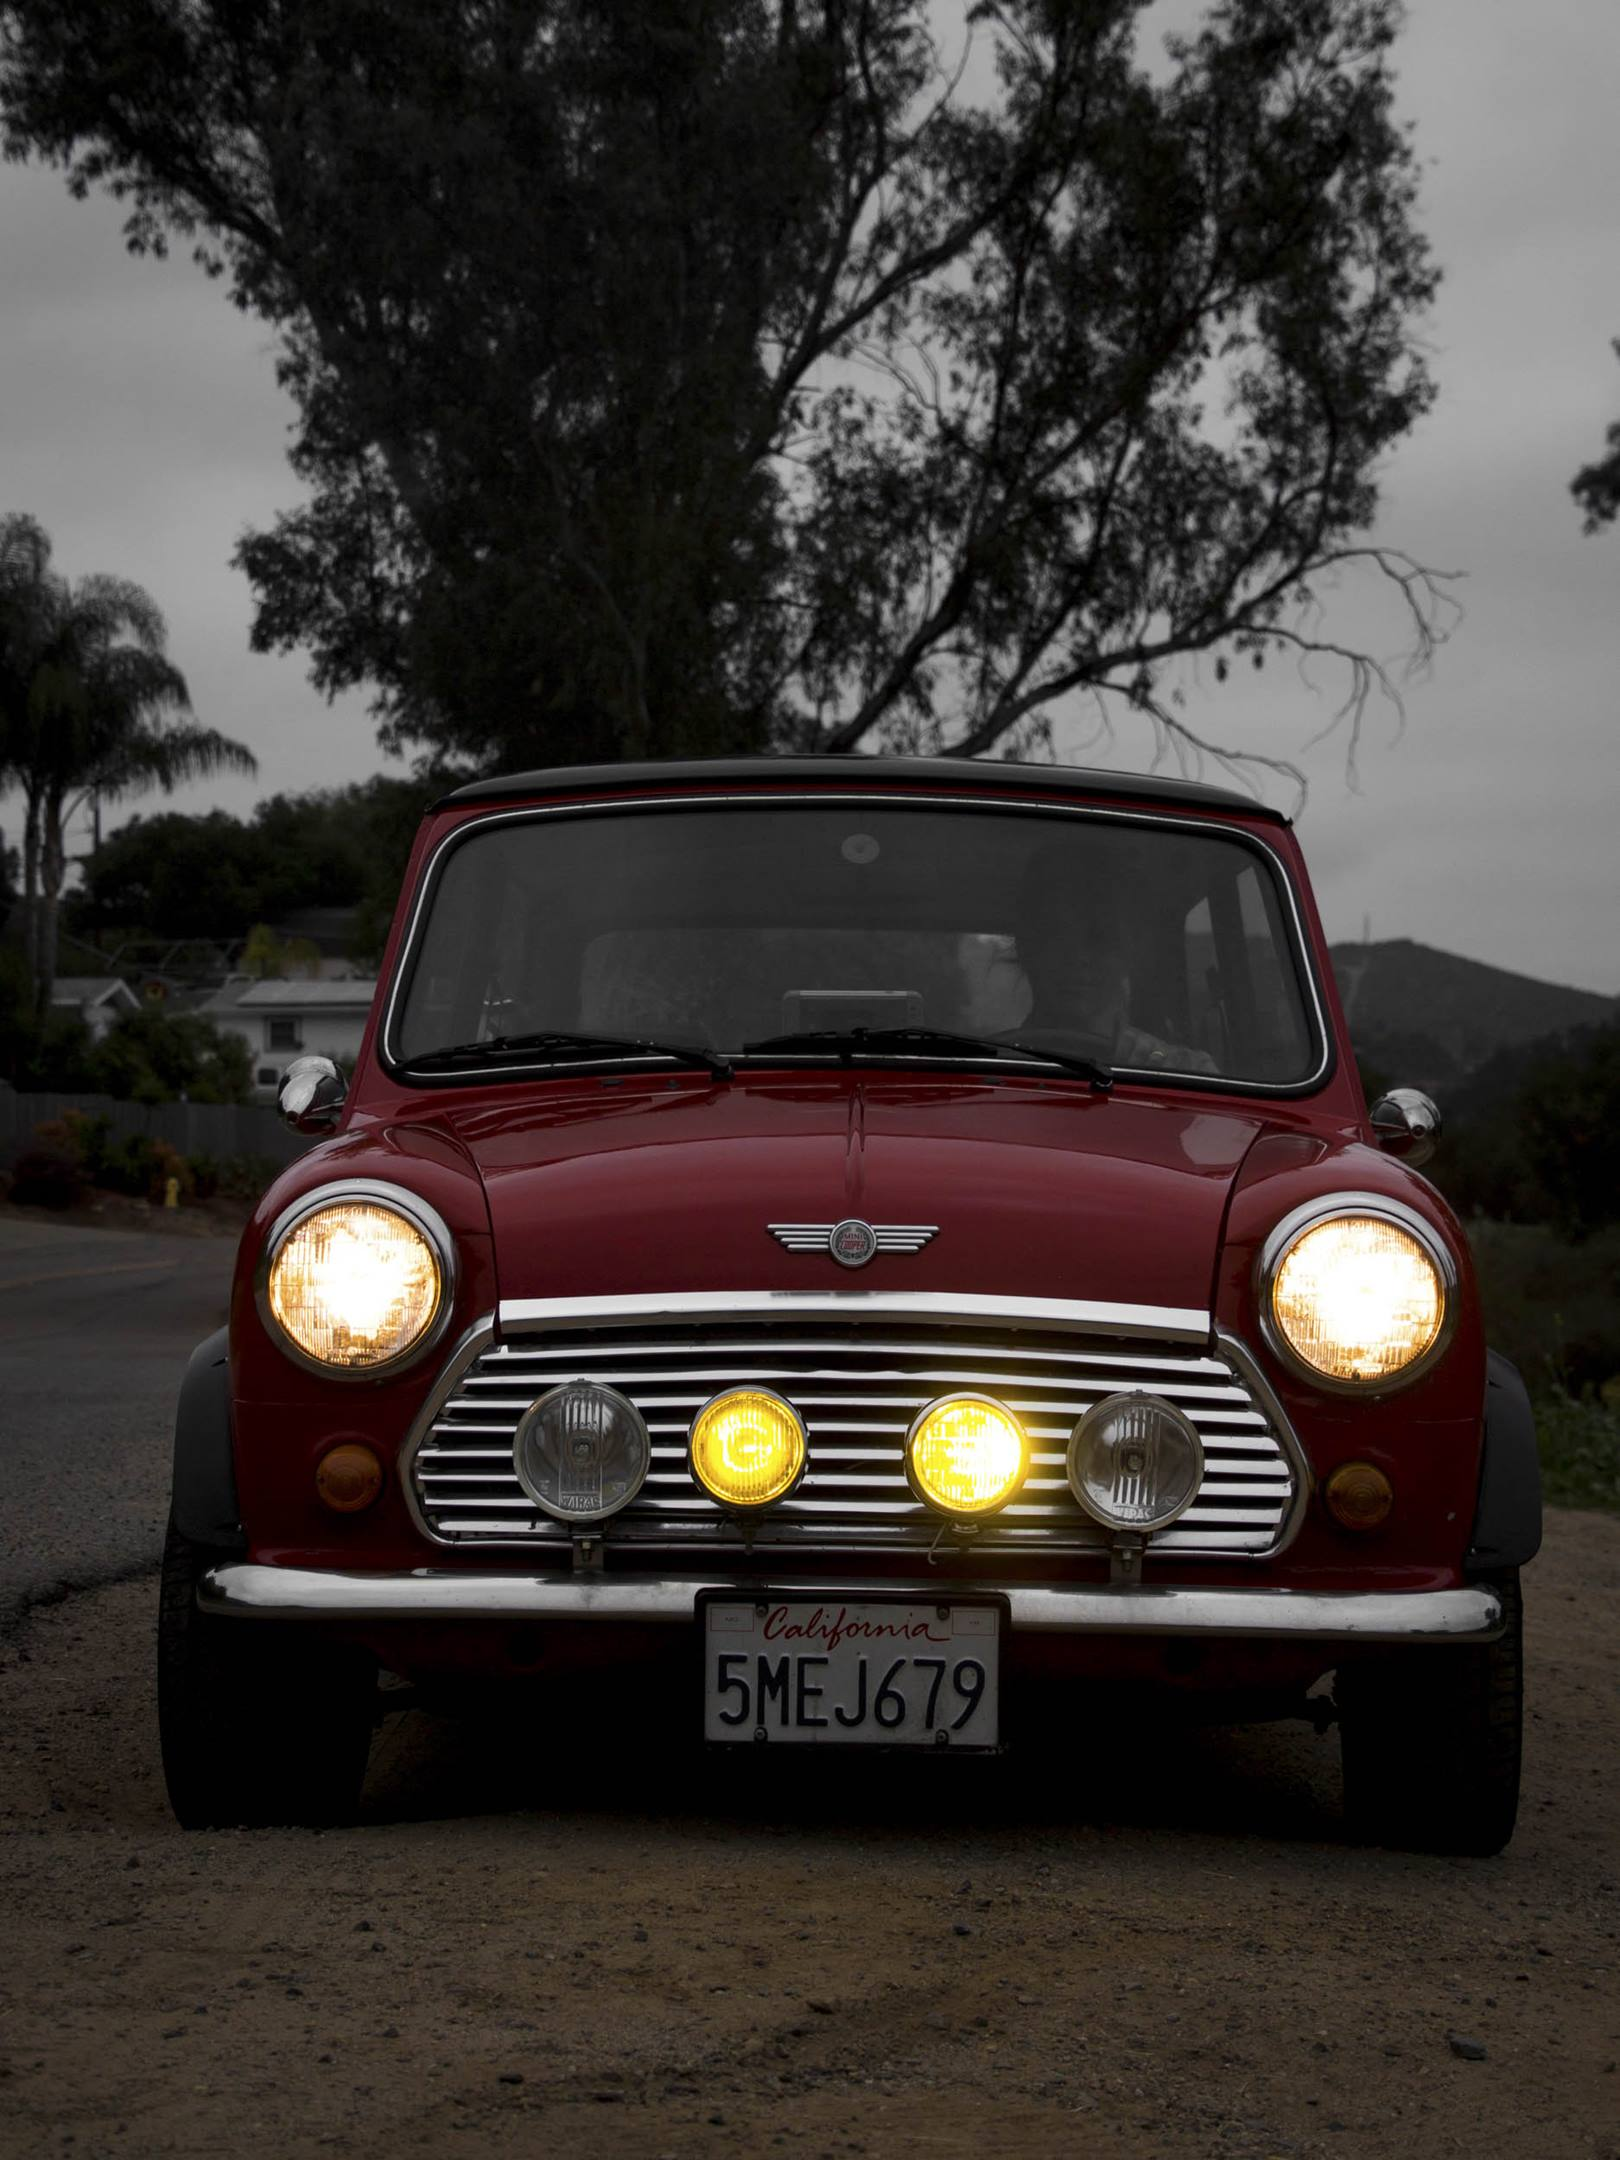 1973 Mini Cooper lights on